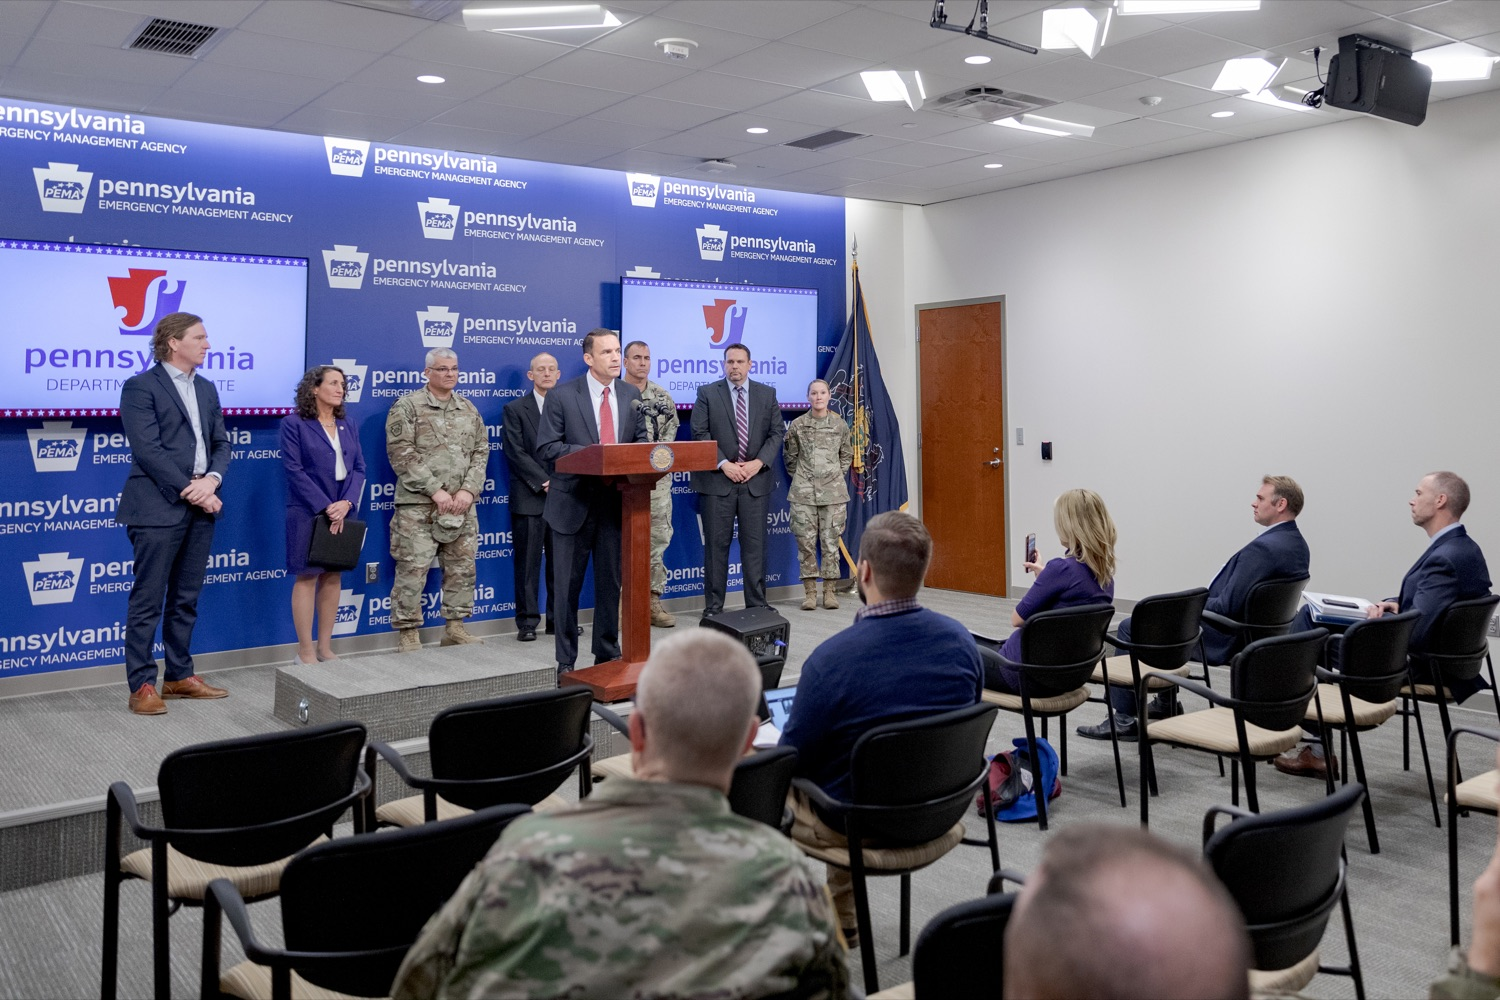 "<a href=""https://filesource.wostreaming.net/commonwealthofpa/photo/17558_DOS_Election_Update_NK_011.JPG"" target=""_blank"">⇣ Download Photo<br></a>Marcus Brown, director of the Governor's Office of Homeland Security, speaks during a press conference assuring Pennsylvanians that a sophisticated network of federal, state and local partnerships is safeguarding todays municipal election, inside PEMA headquarters on Tuesday, November 5, 2019."